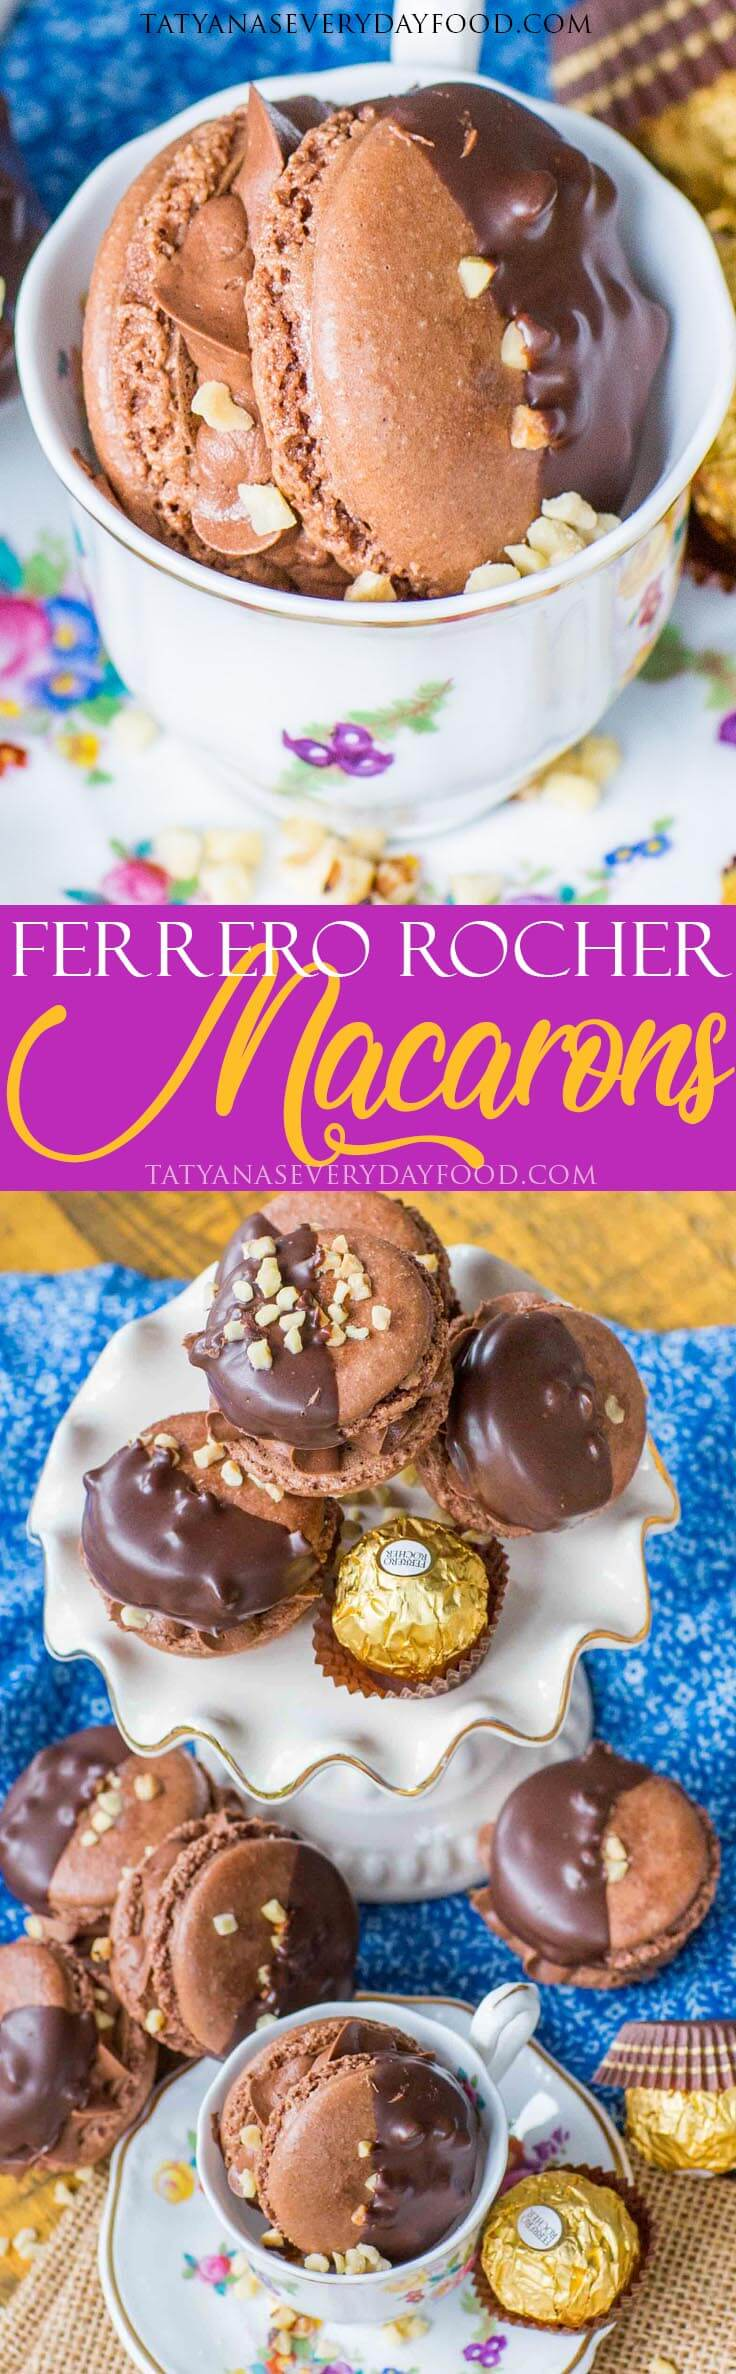 Chocolate Ferrero Rocher French Macarons with video recipe